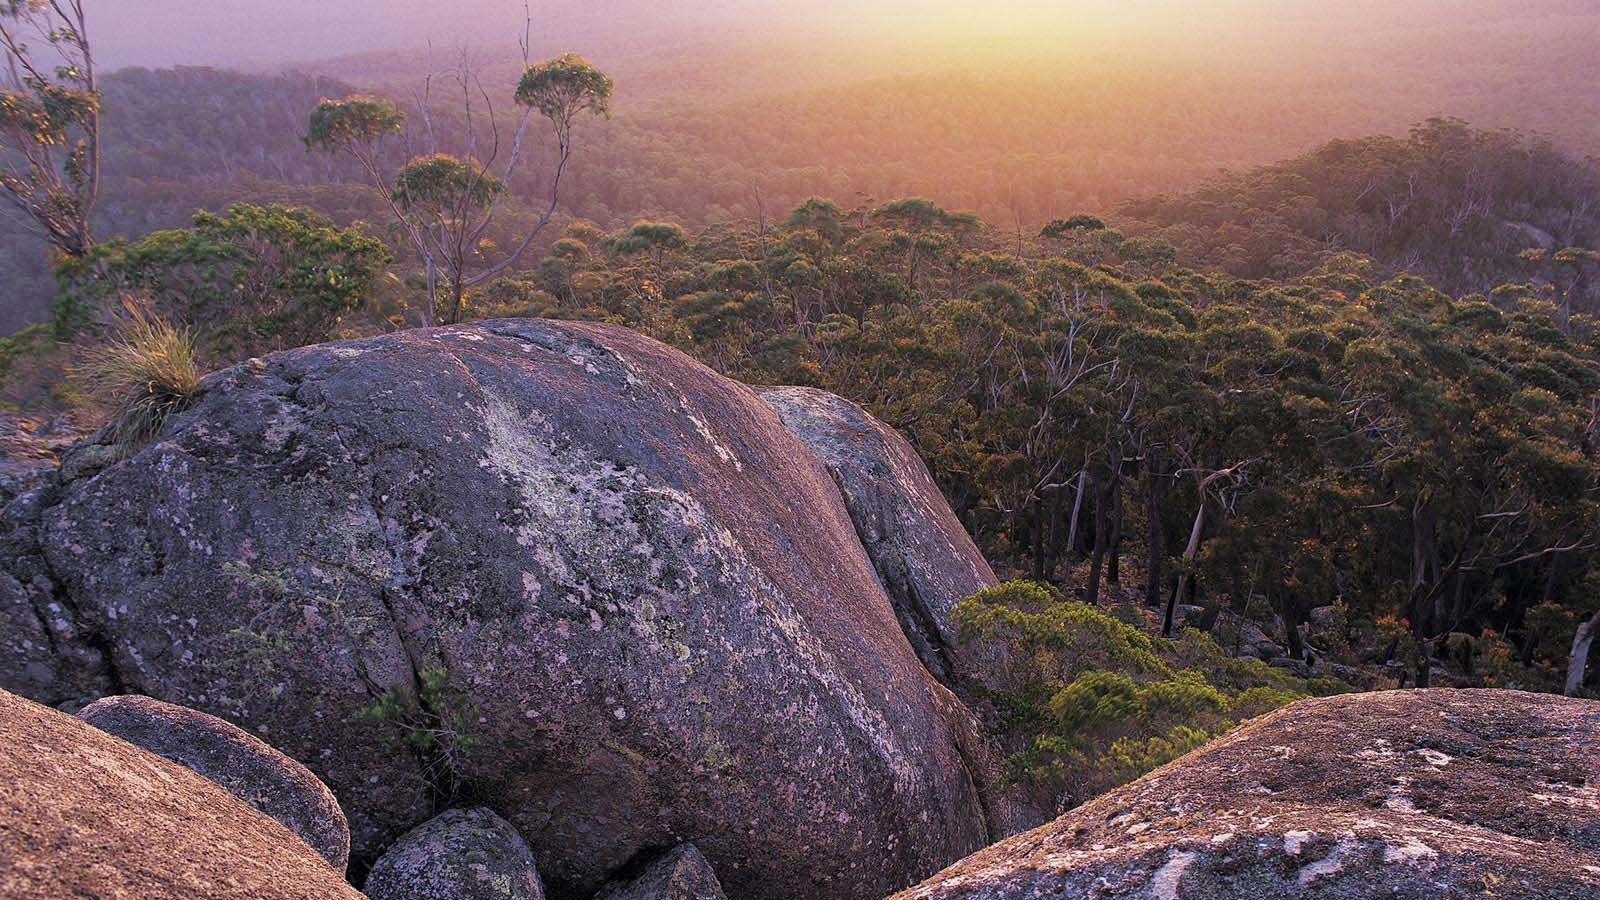 Genoa Peak in Croajingolong National Park, Gippsland, Victoria, Australia